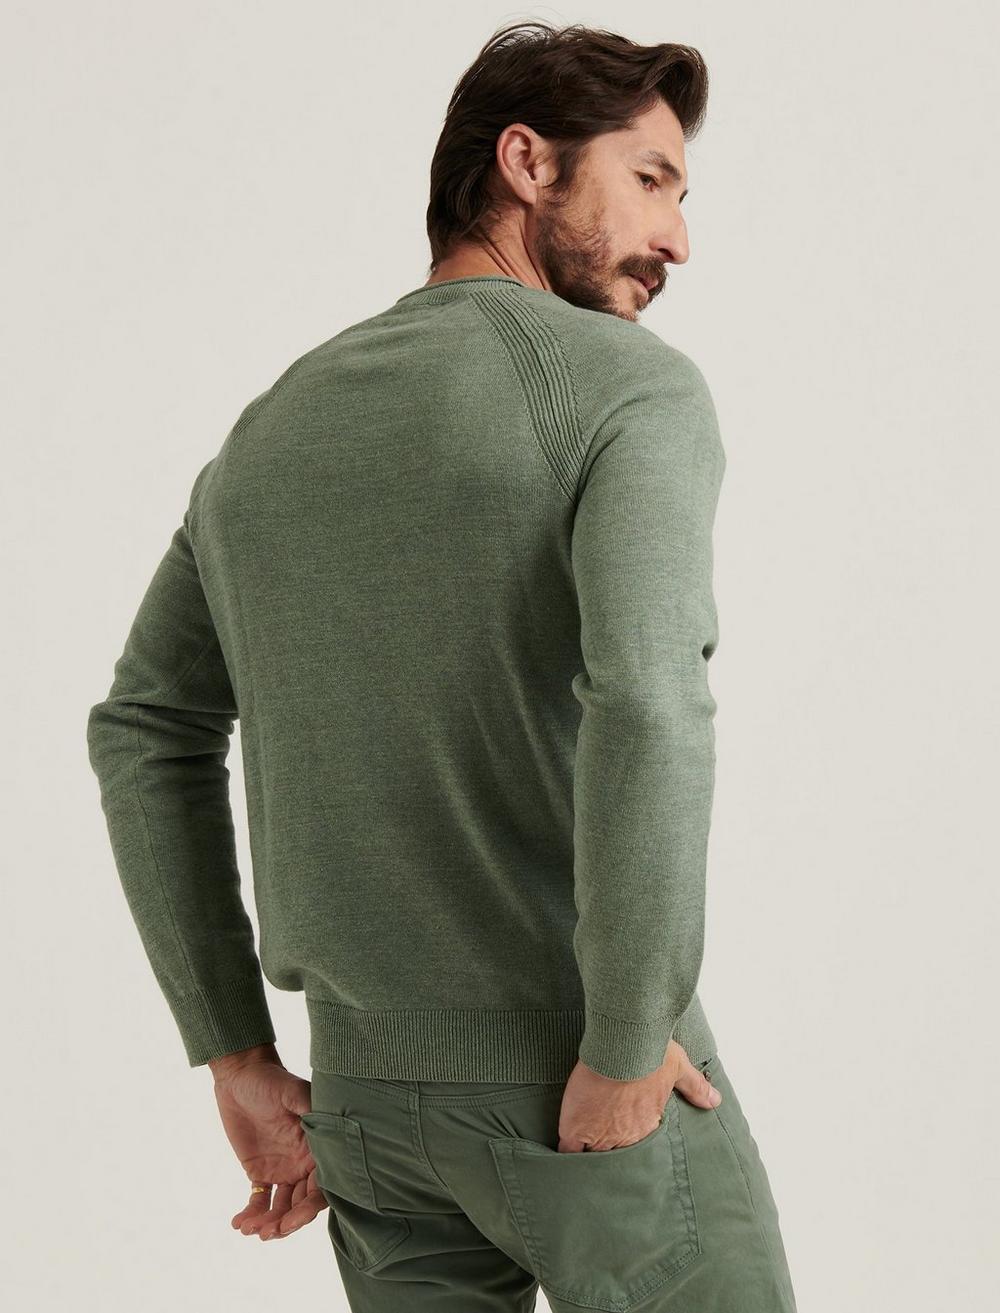 WELTER WEIGHT V-NECK SWEATER, image 4